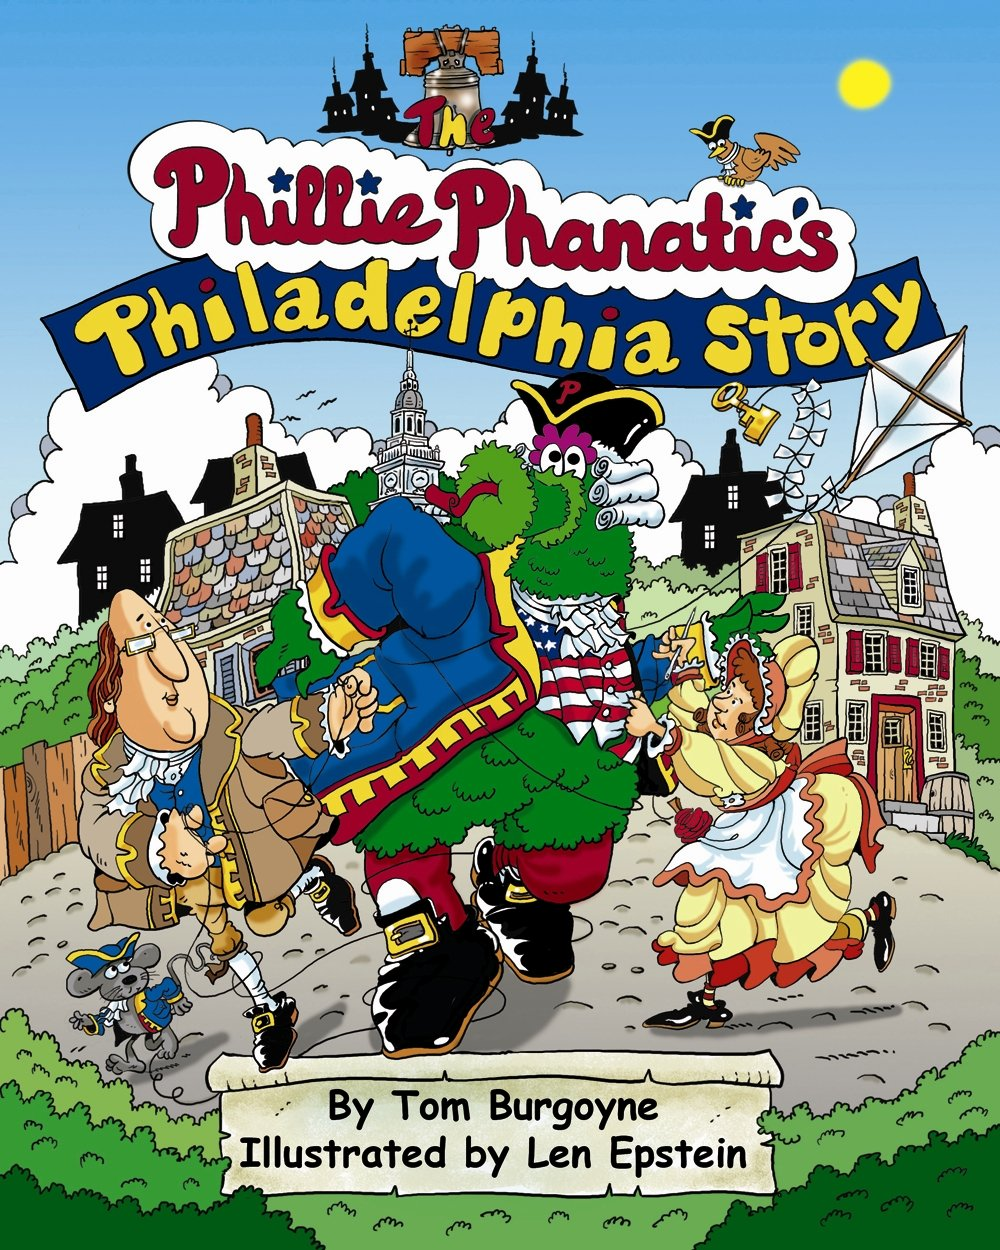 Philly Phanatic Friends The Phillie Phanatic's